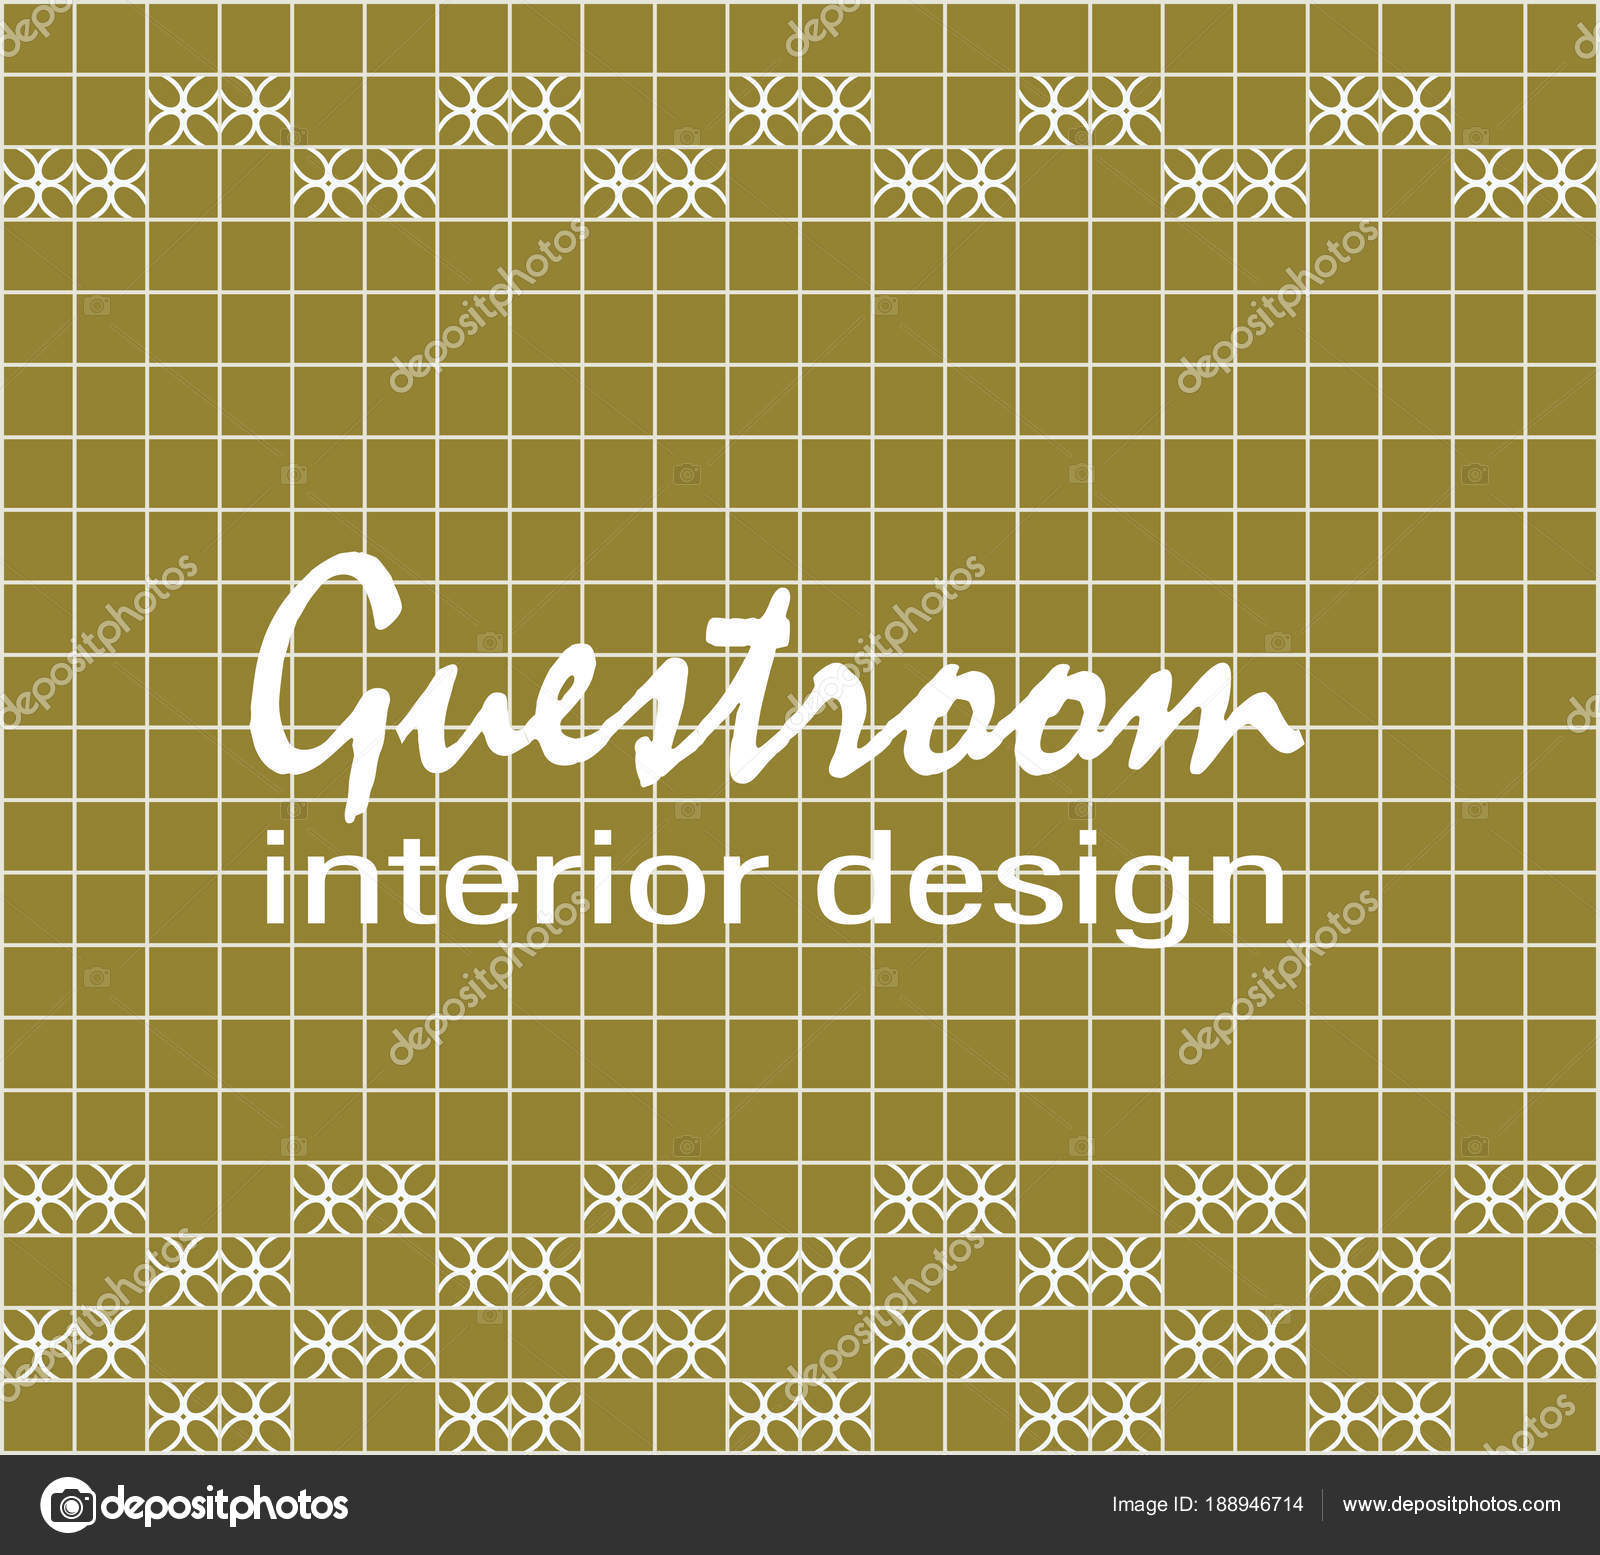 Guestroom Interior Design Text Tile Wall Yellow Green Square Tiles ...